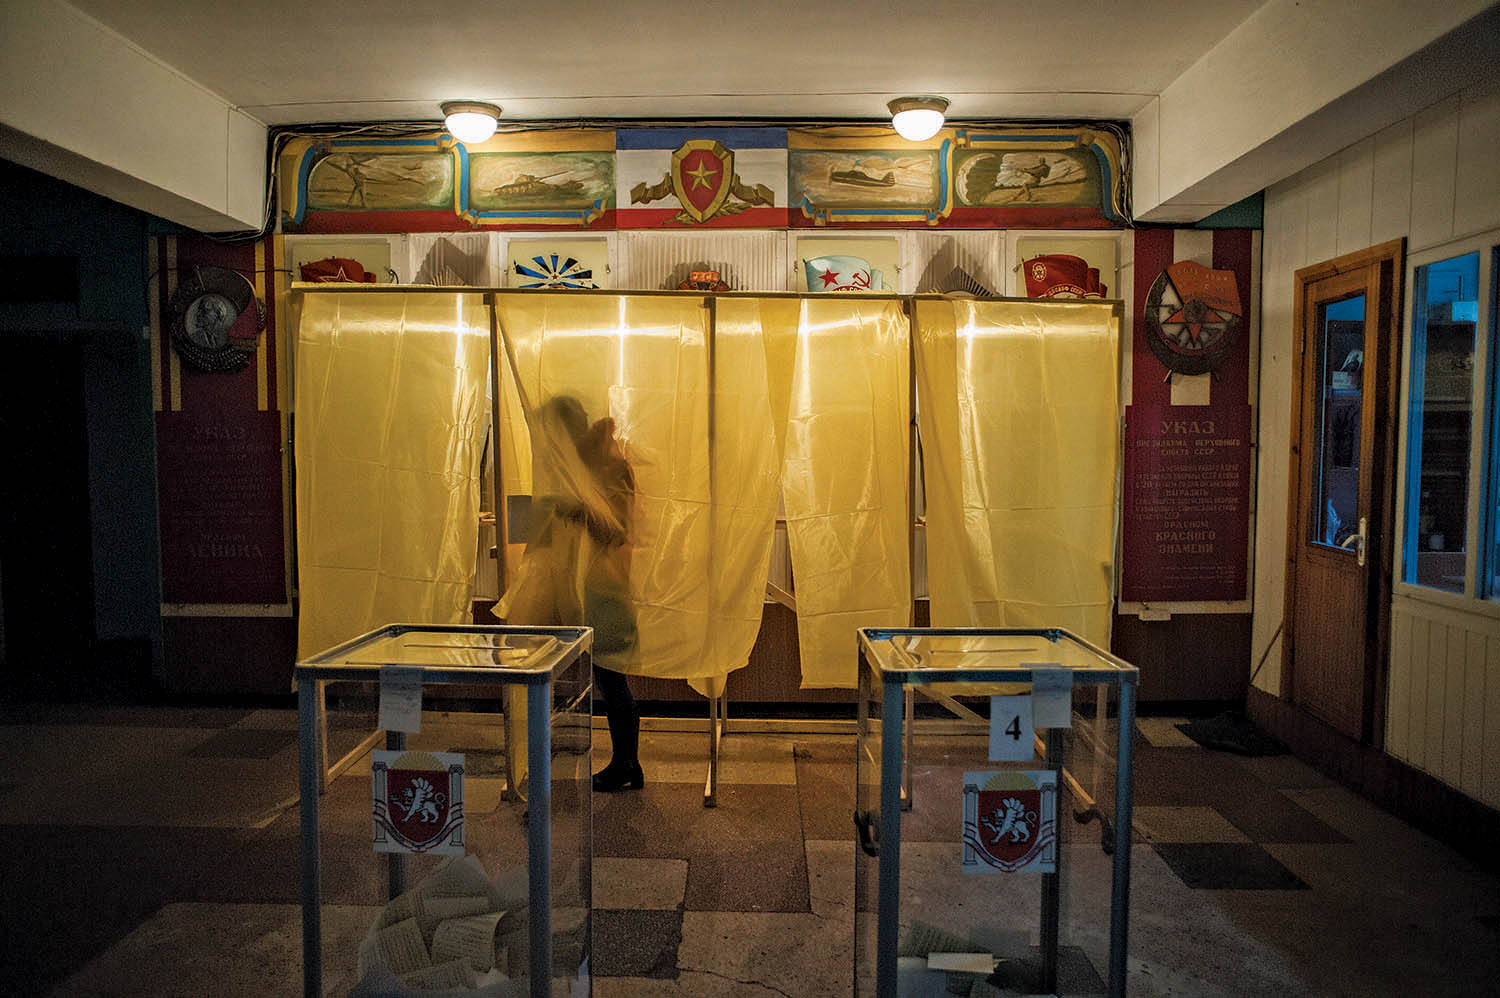 the theater tsar vqr online on the wall behind the voting booth are various soviet memorabilia including the flag of the former soviet union and a portrait of vladimir lenin